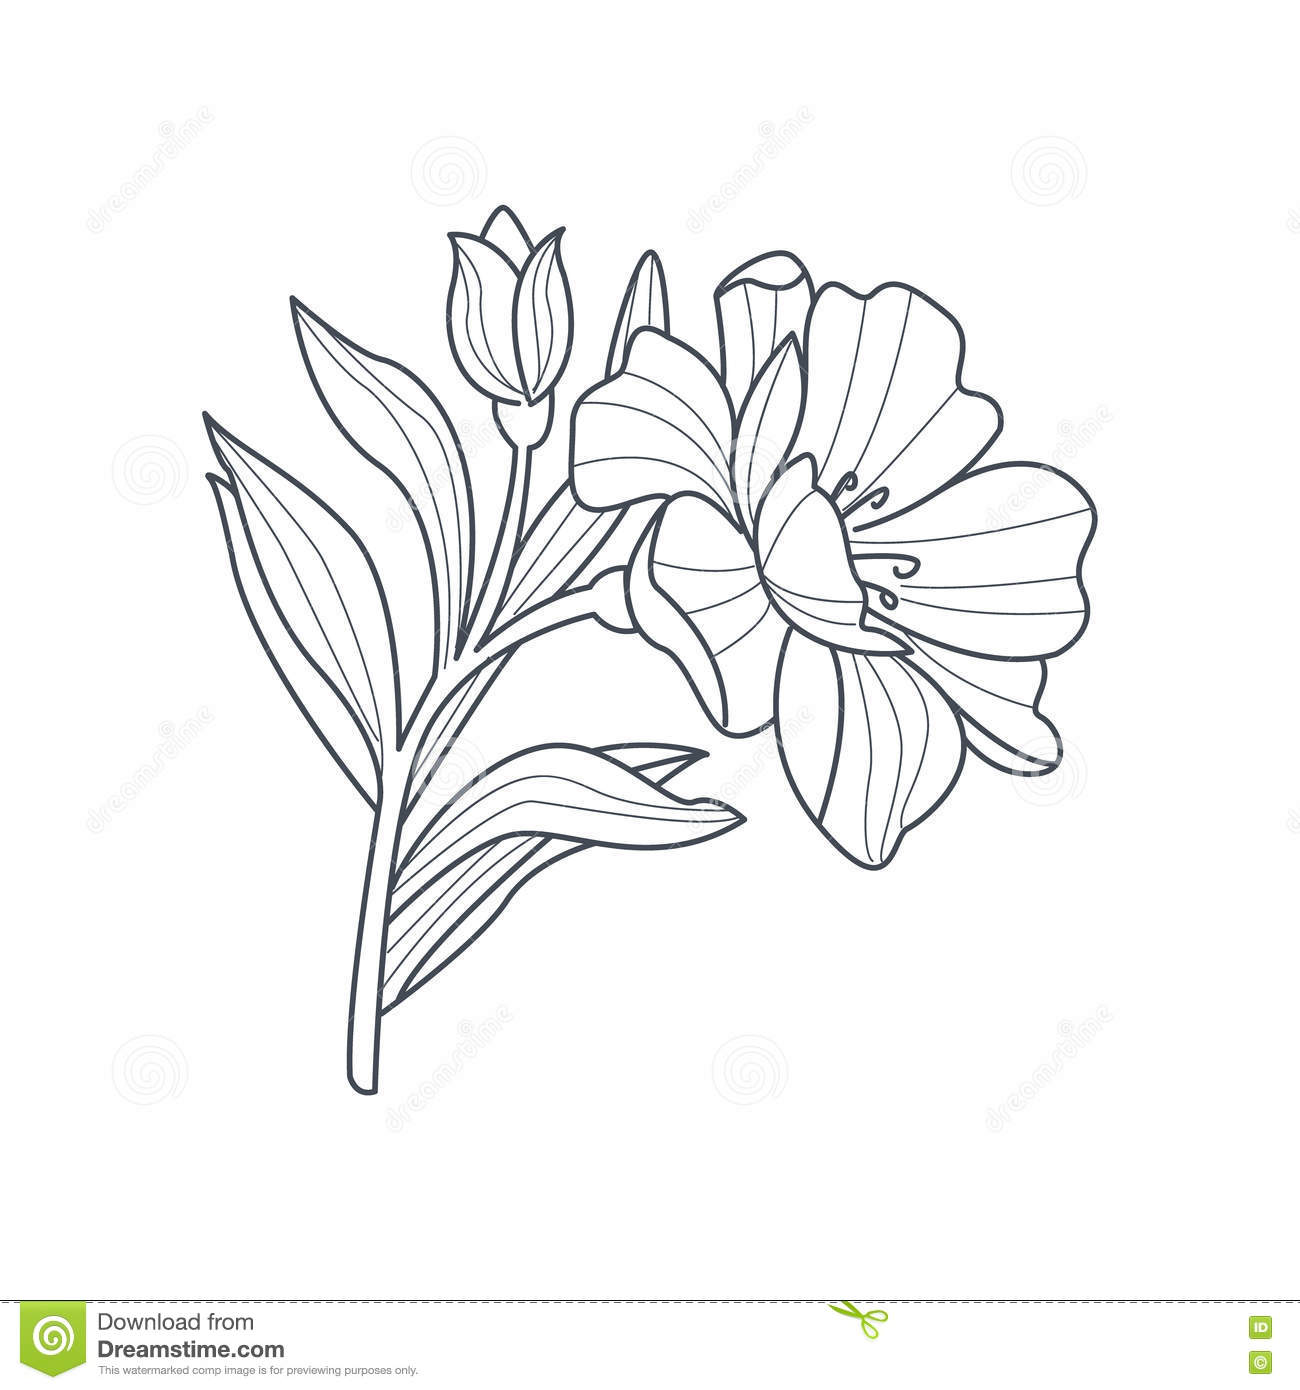 Marigold Flower Line Drawing : Monochrome drawing of a wolverine with patterns line art